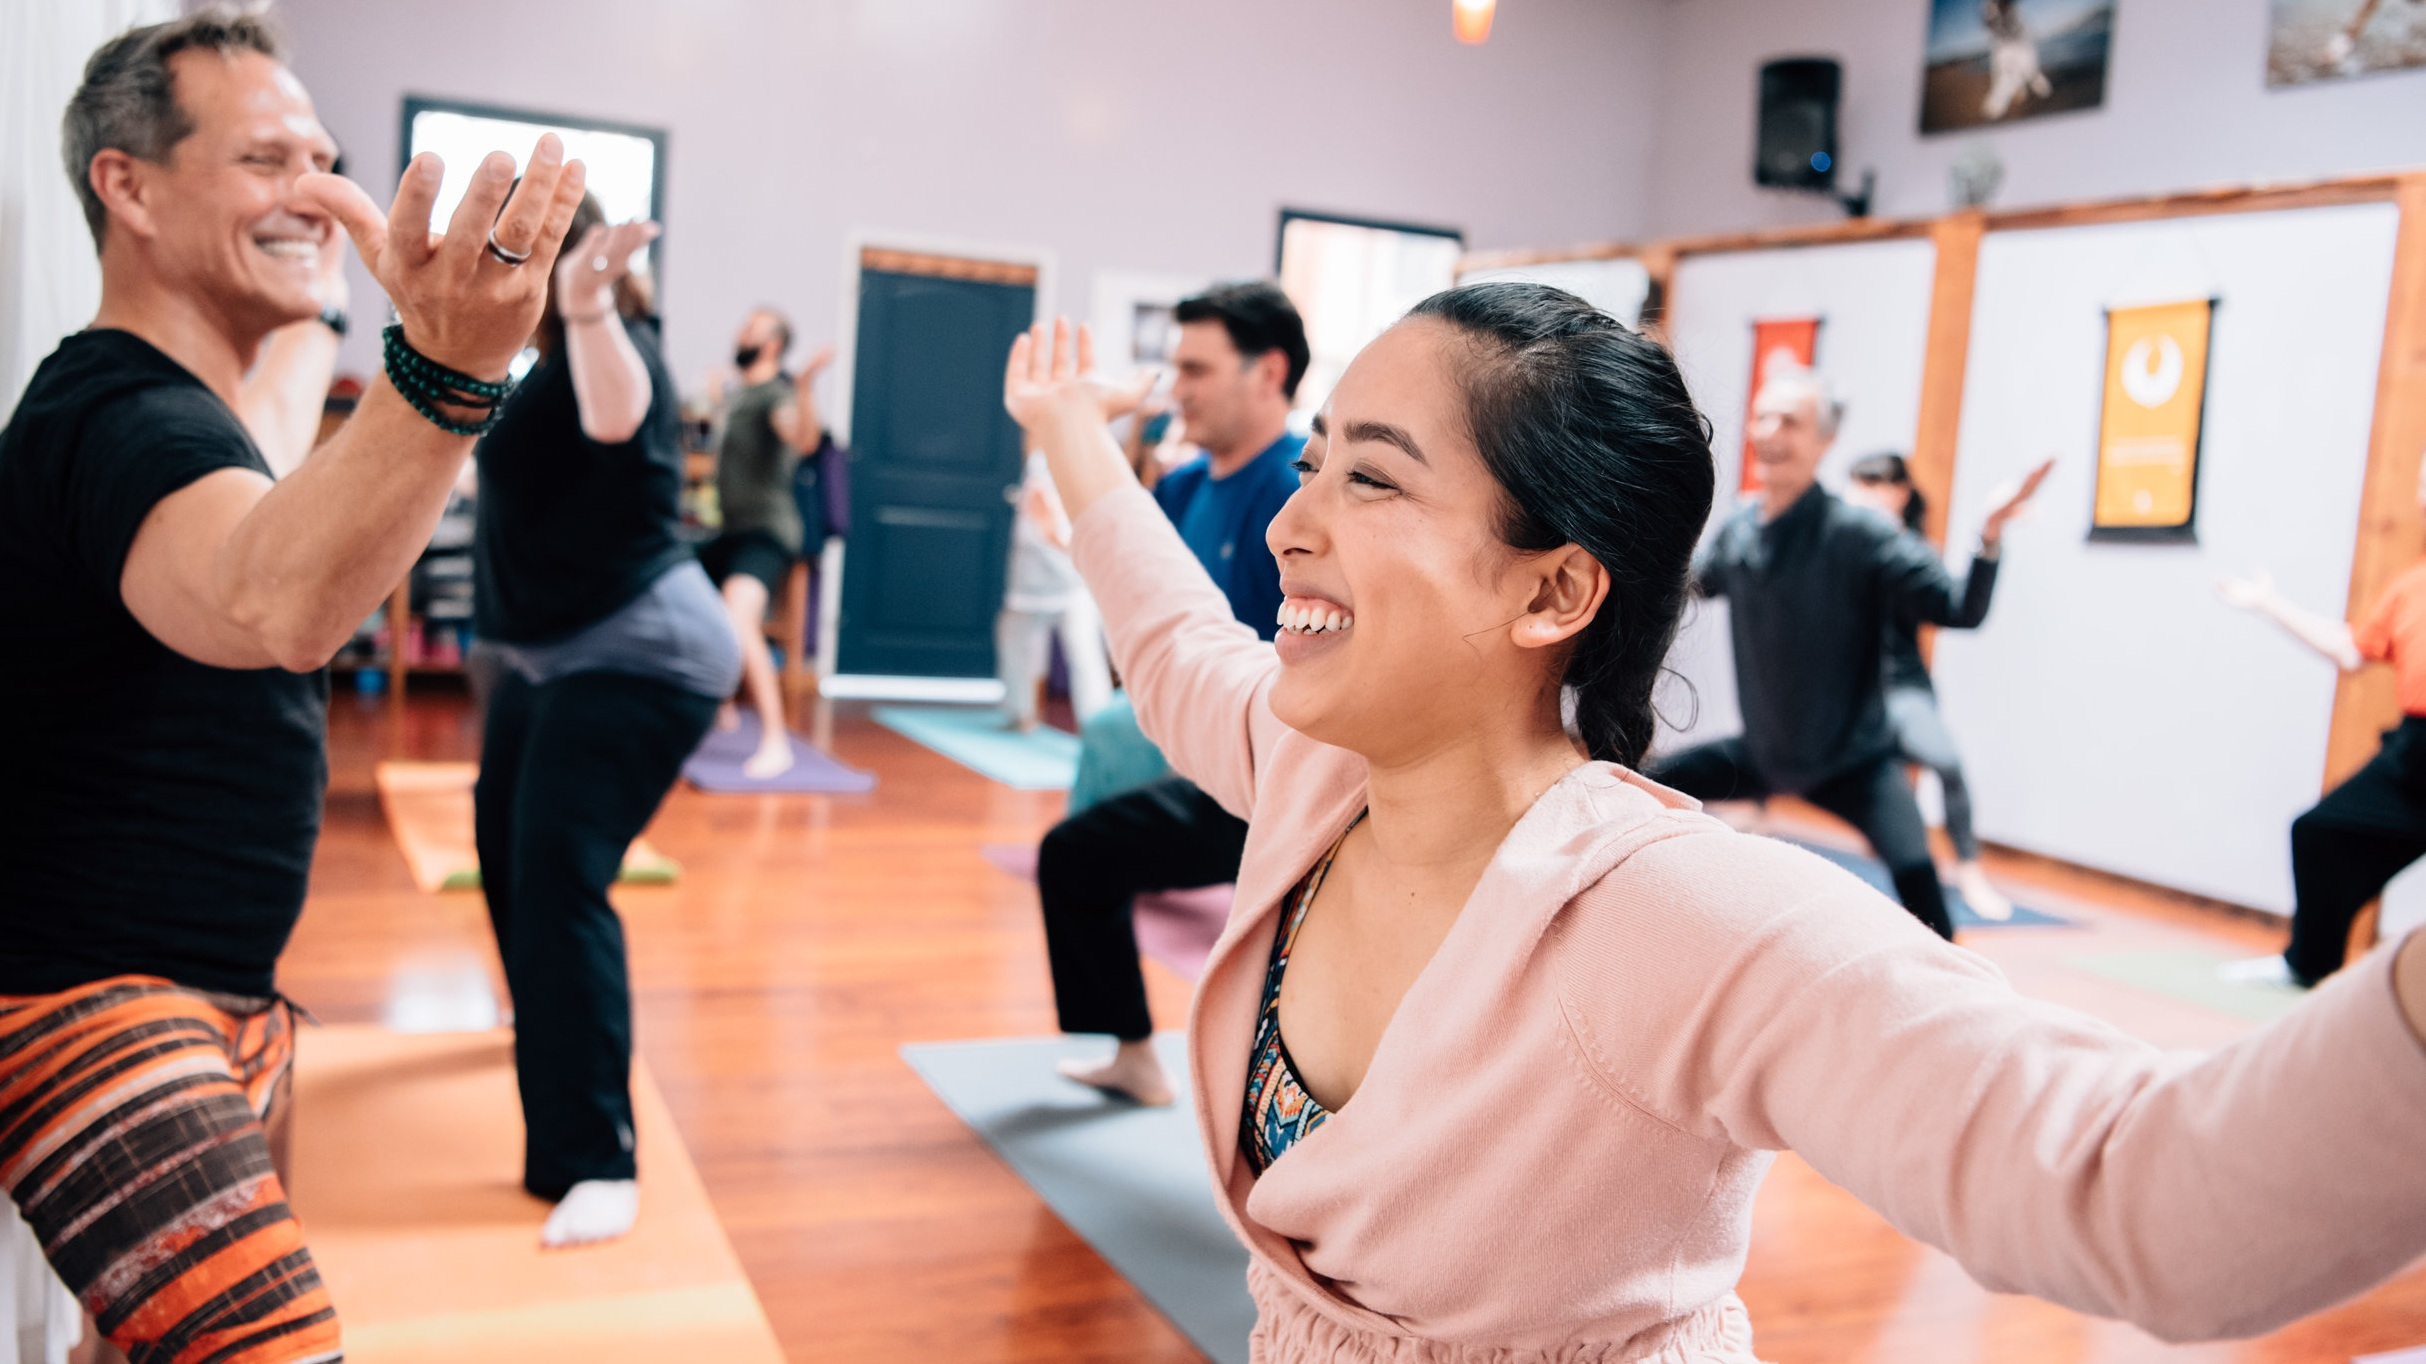 now open! - Check out our group class schedule3048 Claremont  Ave, Berkeley, CA 94705510-859-3559WE ARE HIRING - infoberkeley@purushayoga.org